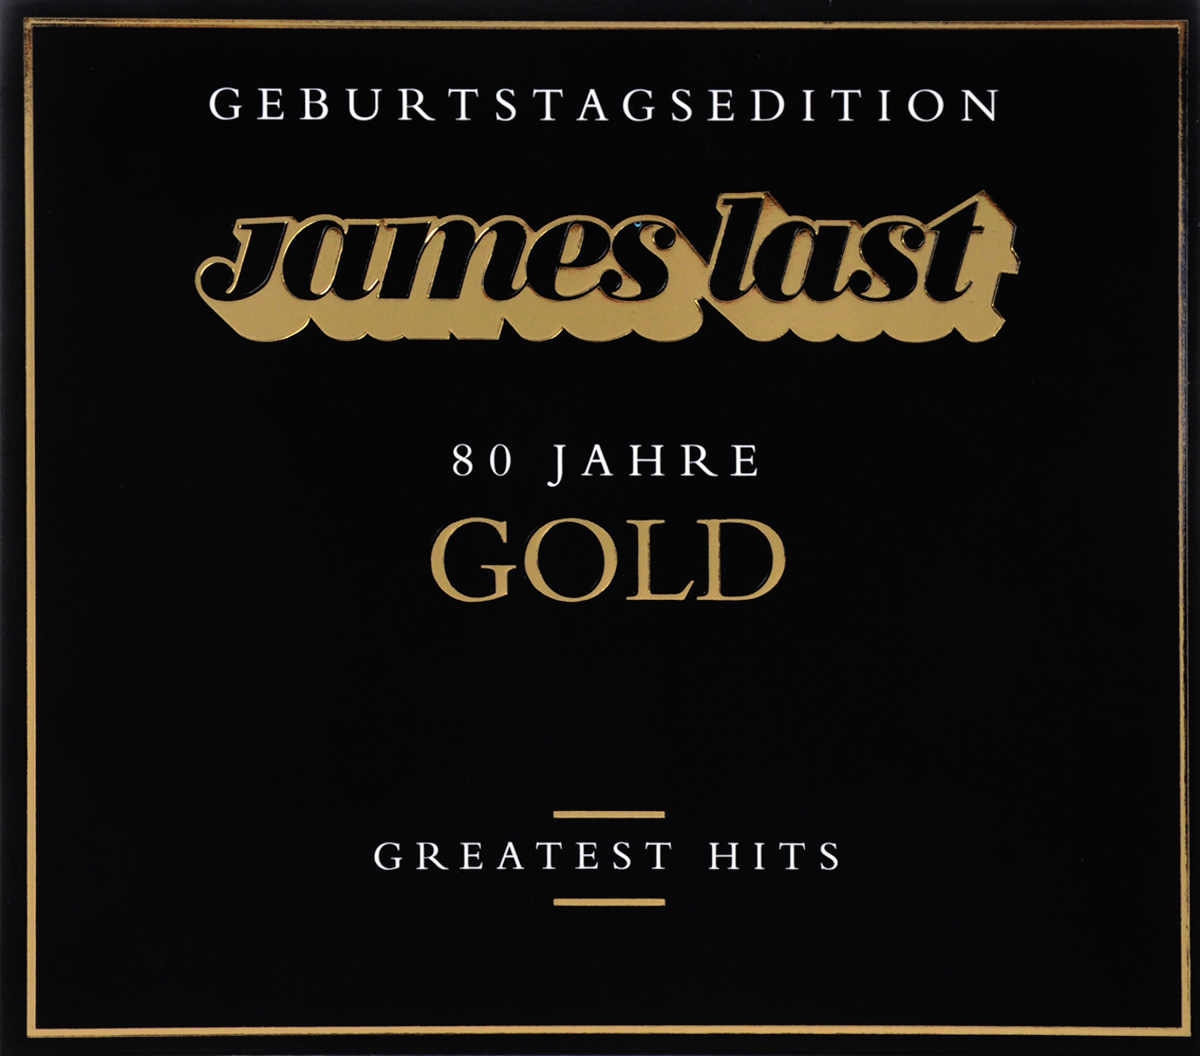 Джеймс Ласт James Last. Gold. Greatest Hits джеймс ласт james last 80 greatest hits 3 cd